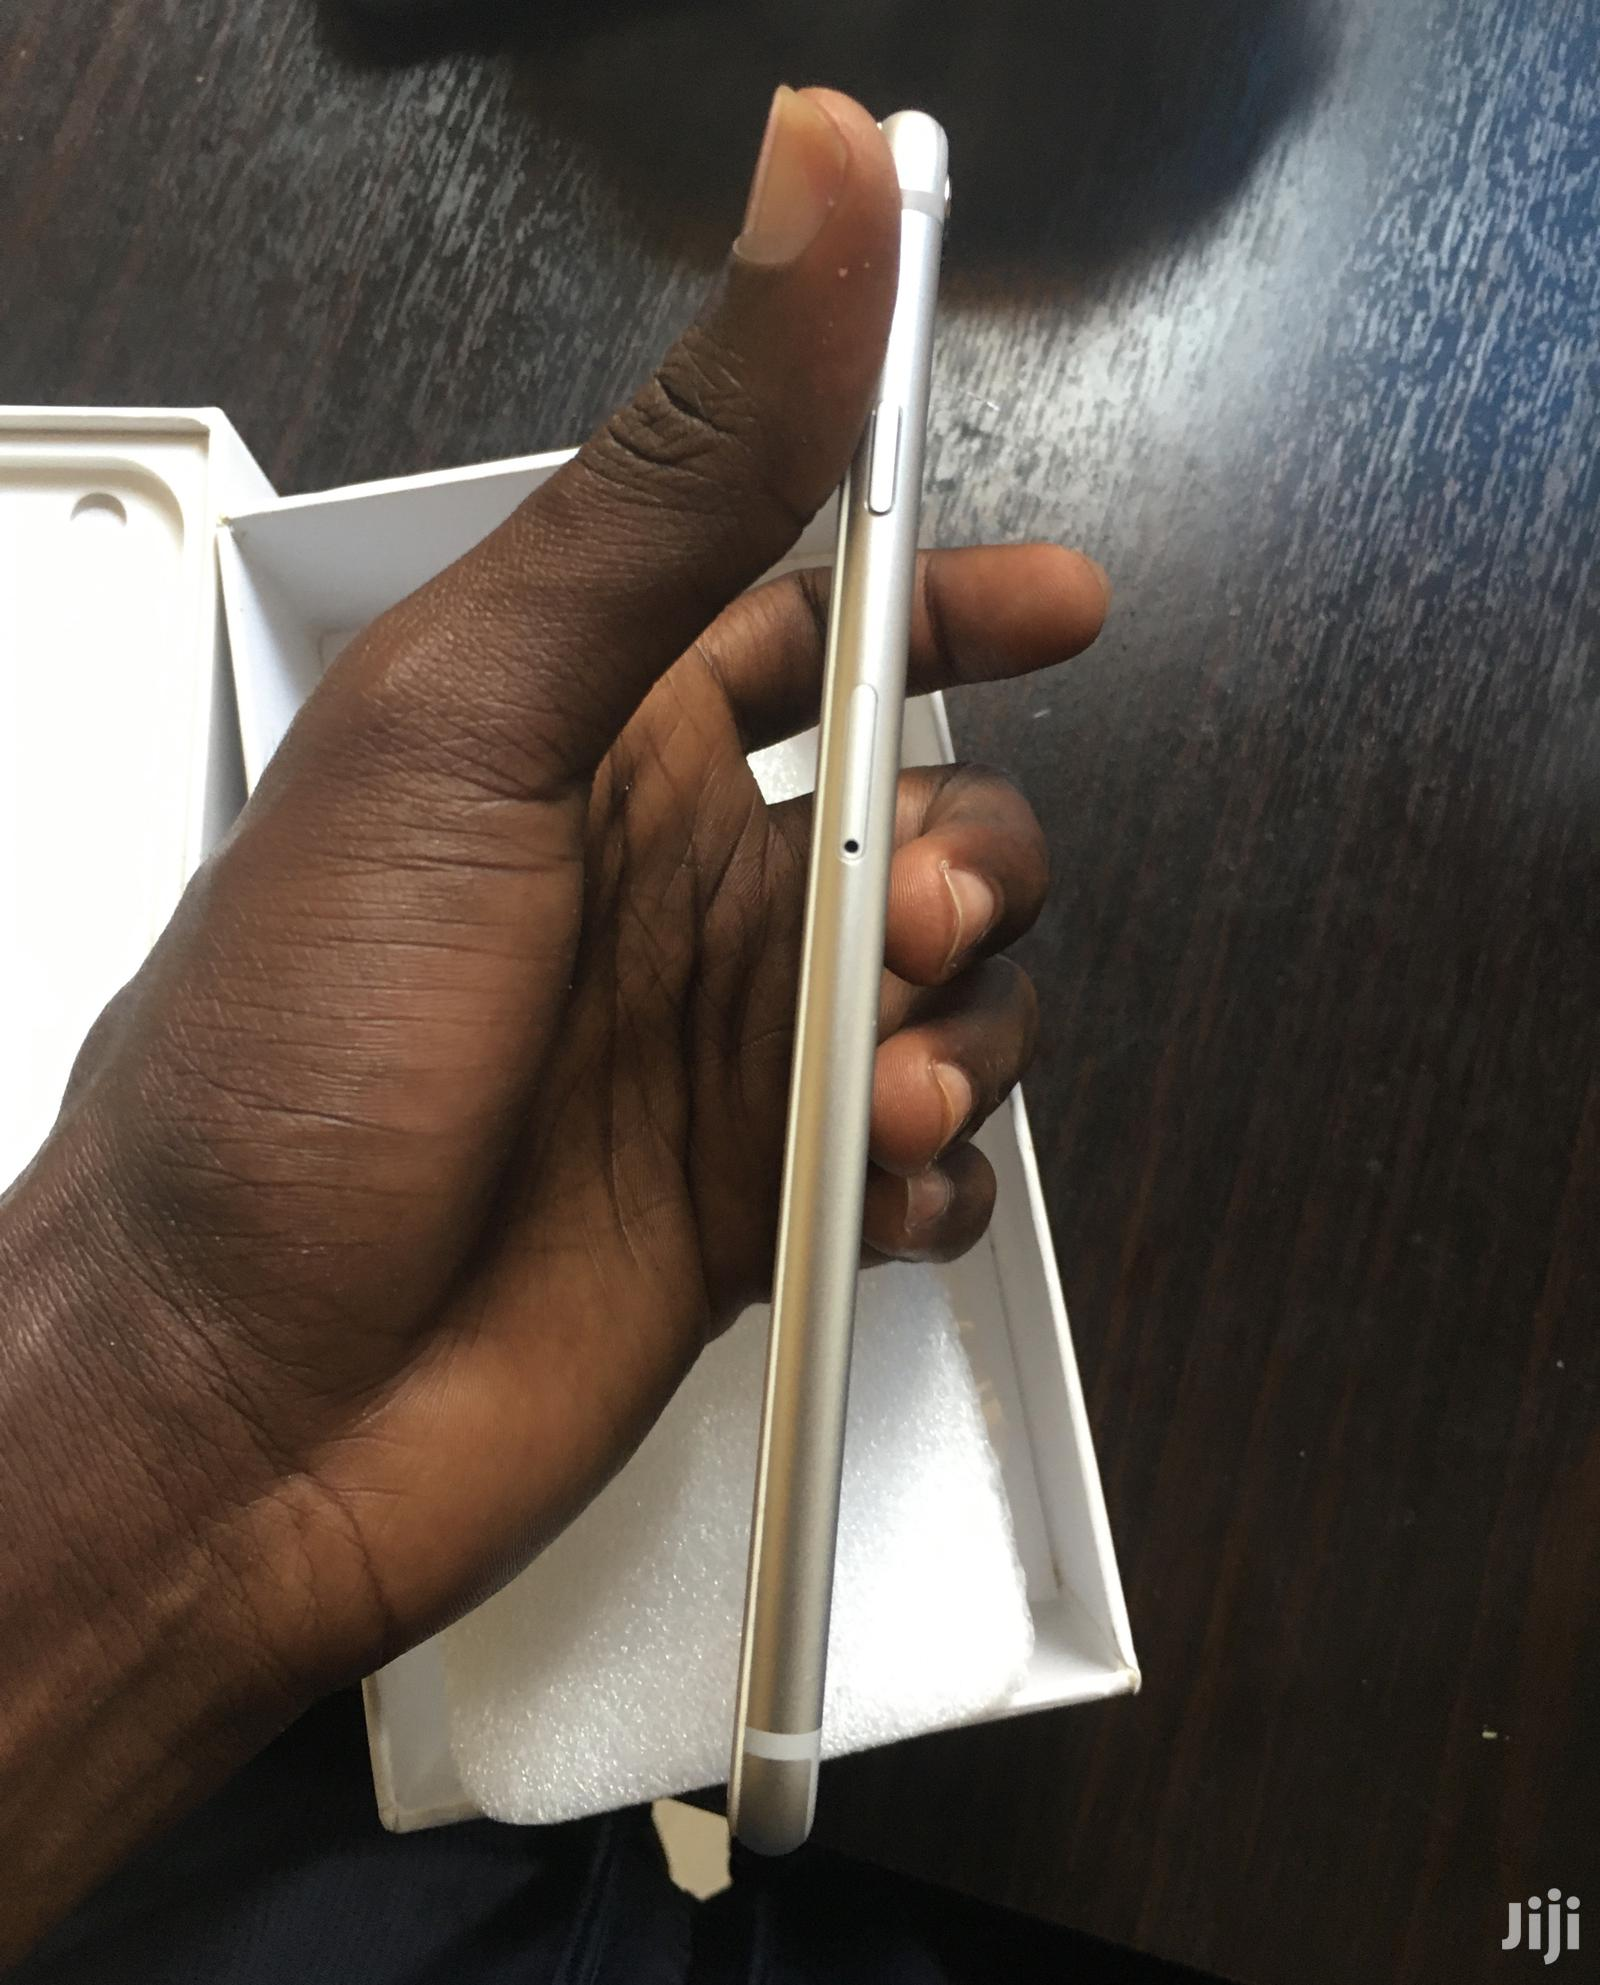 New Apple iPhone 6s Plus 64 GB Silver | Mobile Phones for sale in Lartebiokorshie, Greater Accra, Ghana